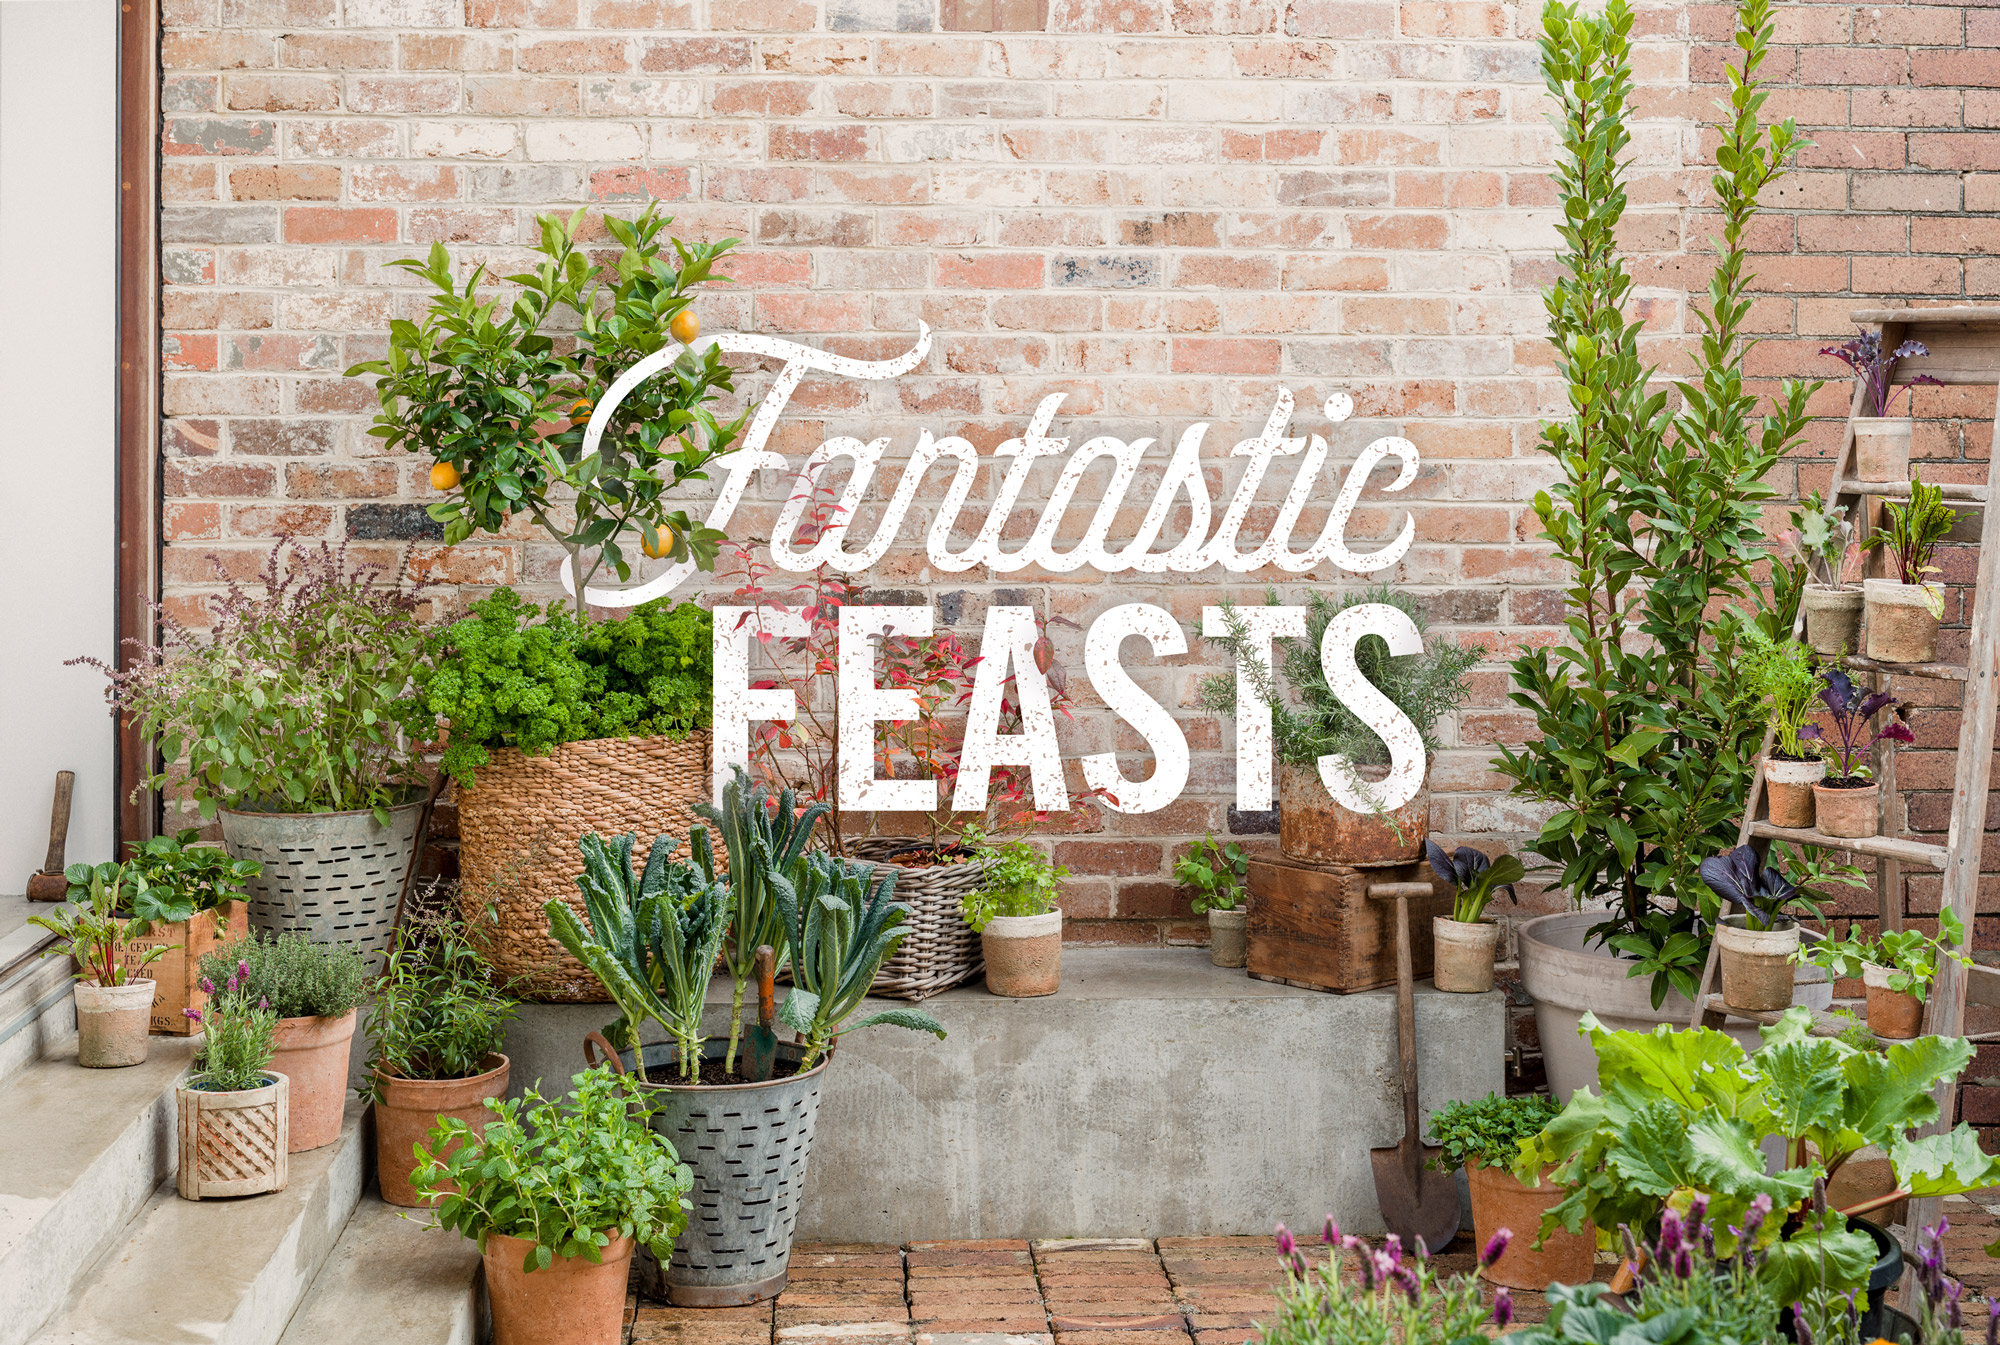 Fantastic-Feasts---Photo-by-Daniel-Shipp